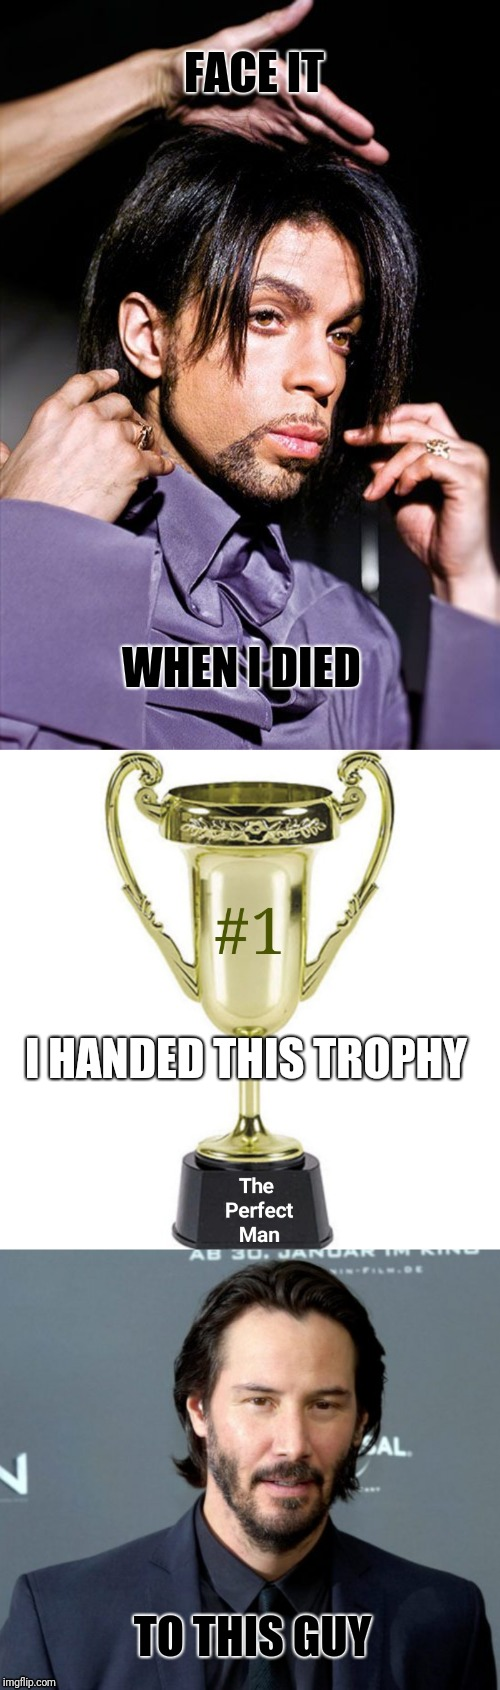 Who can deny? No one. | FACE IT TO THIS GUY I HANDED THIS TROPHY WHEN I DIED | image tagged in keanu reeves,prince,trophy,funny memes,true,facts | made w/ Imgflip meme maker